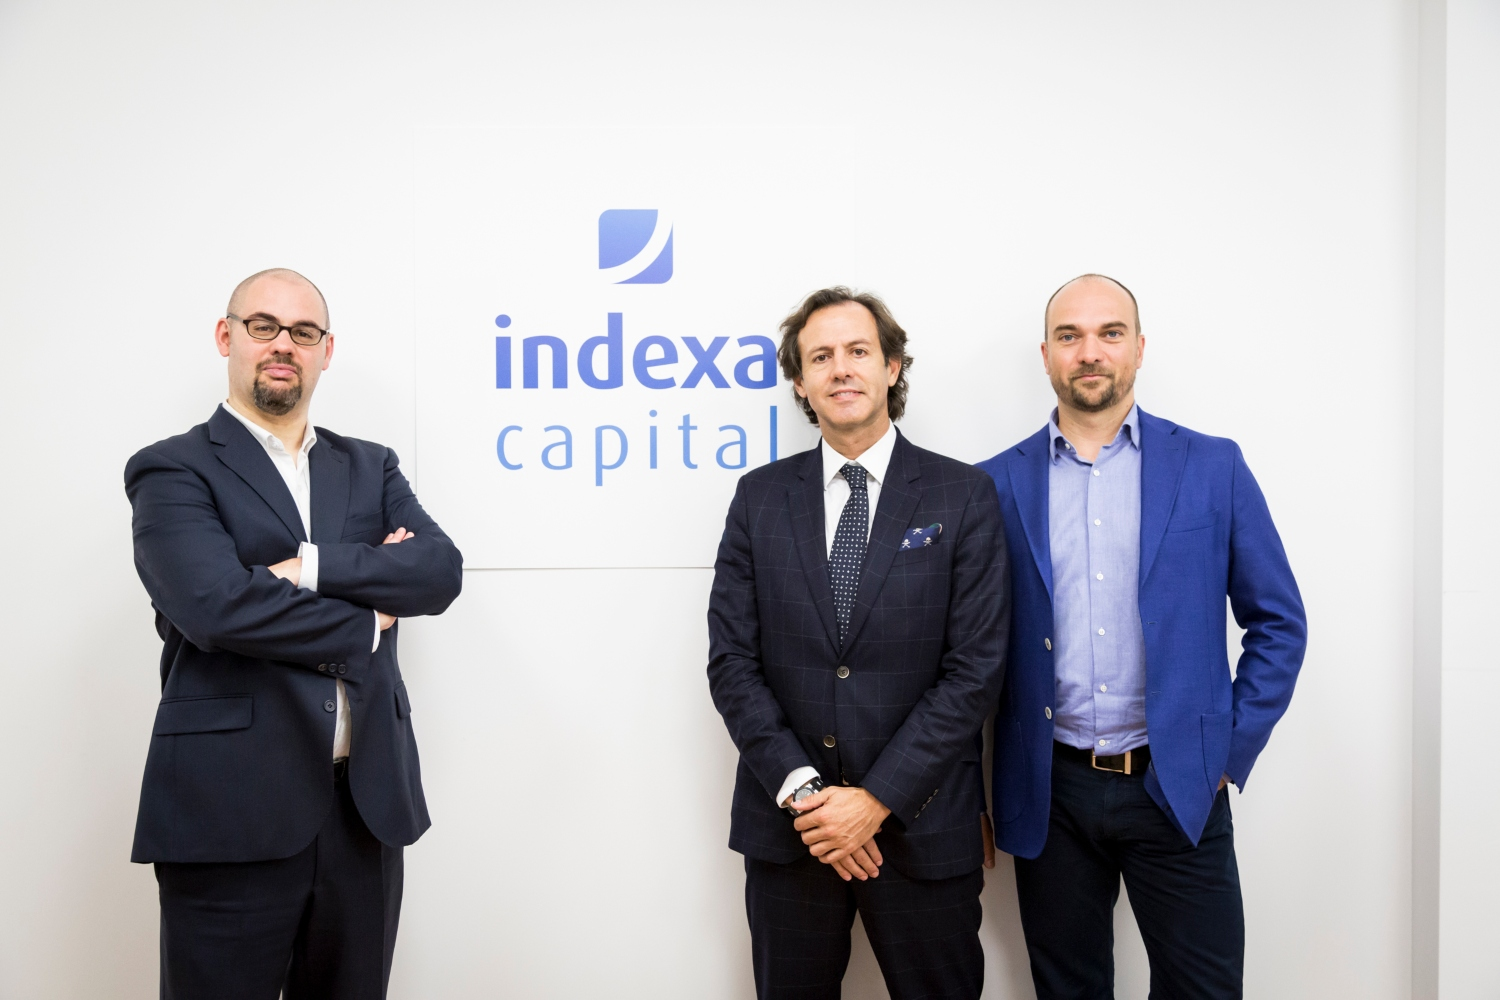 indexa capital founders